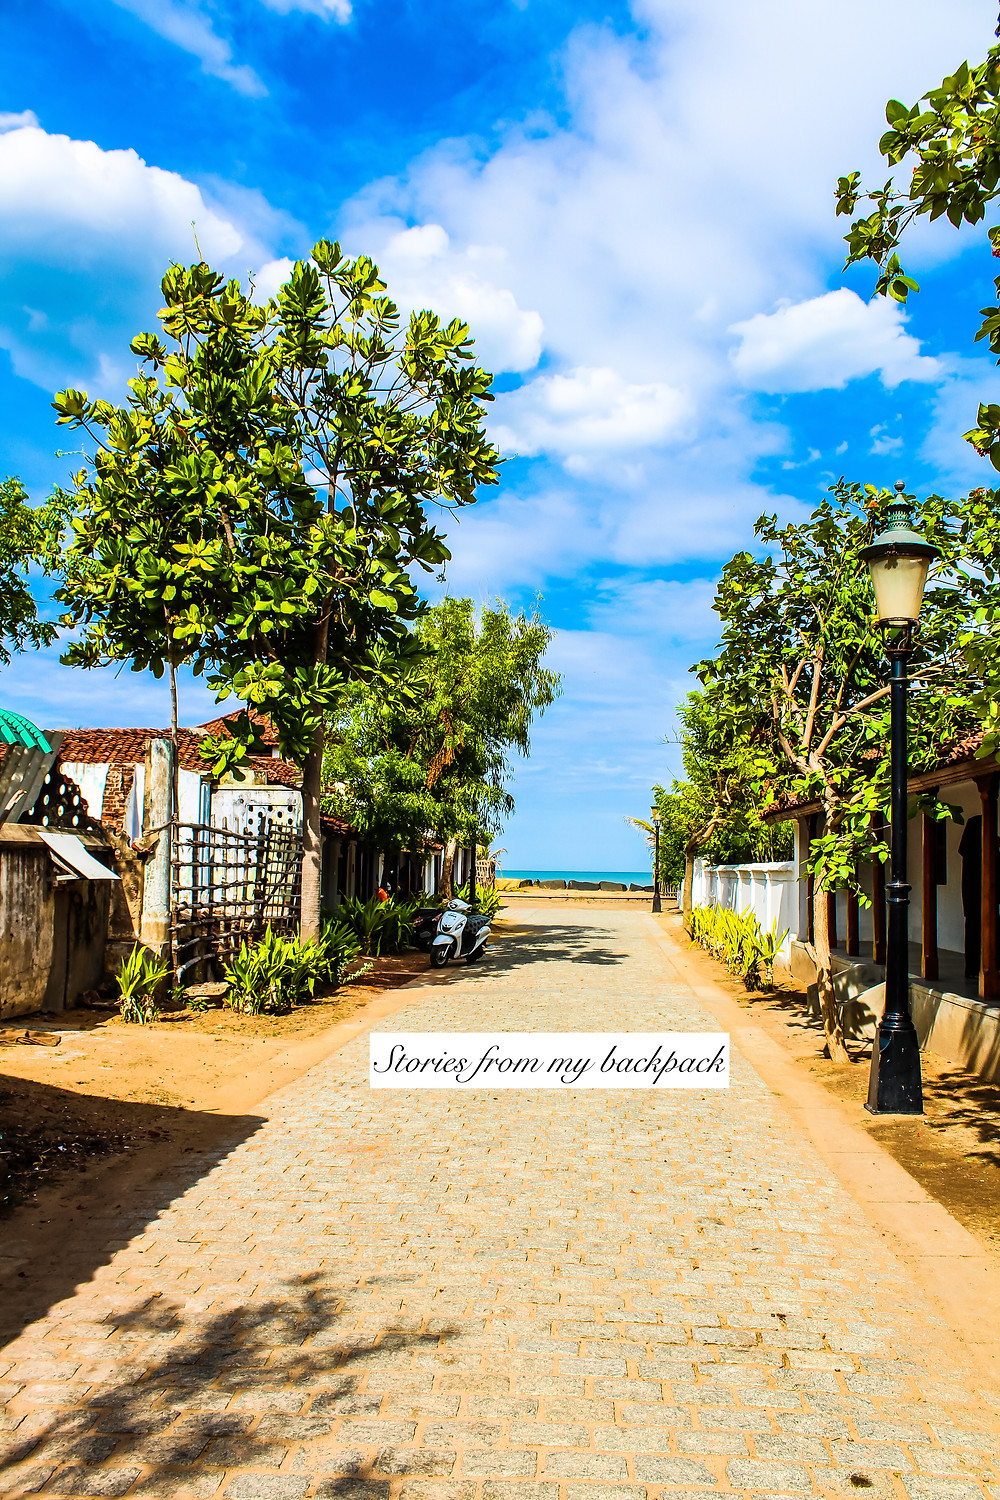 Tranquebar, Tharangambadi, land of the singing waves, danish architecture in India, colonial architecture, heritage town, heritage buildings, ancient temple, Tamil Nadu tourism, European streets, goldsmith street